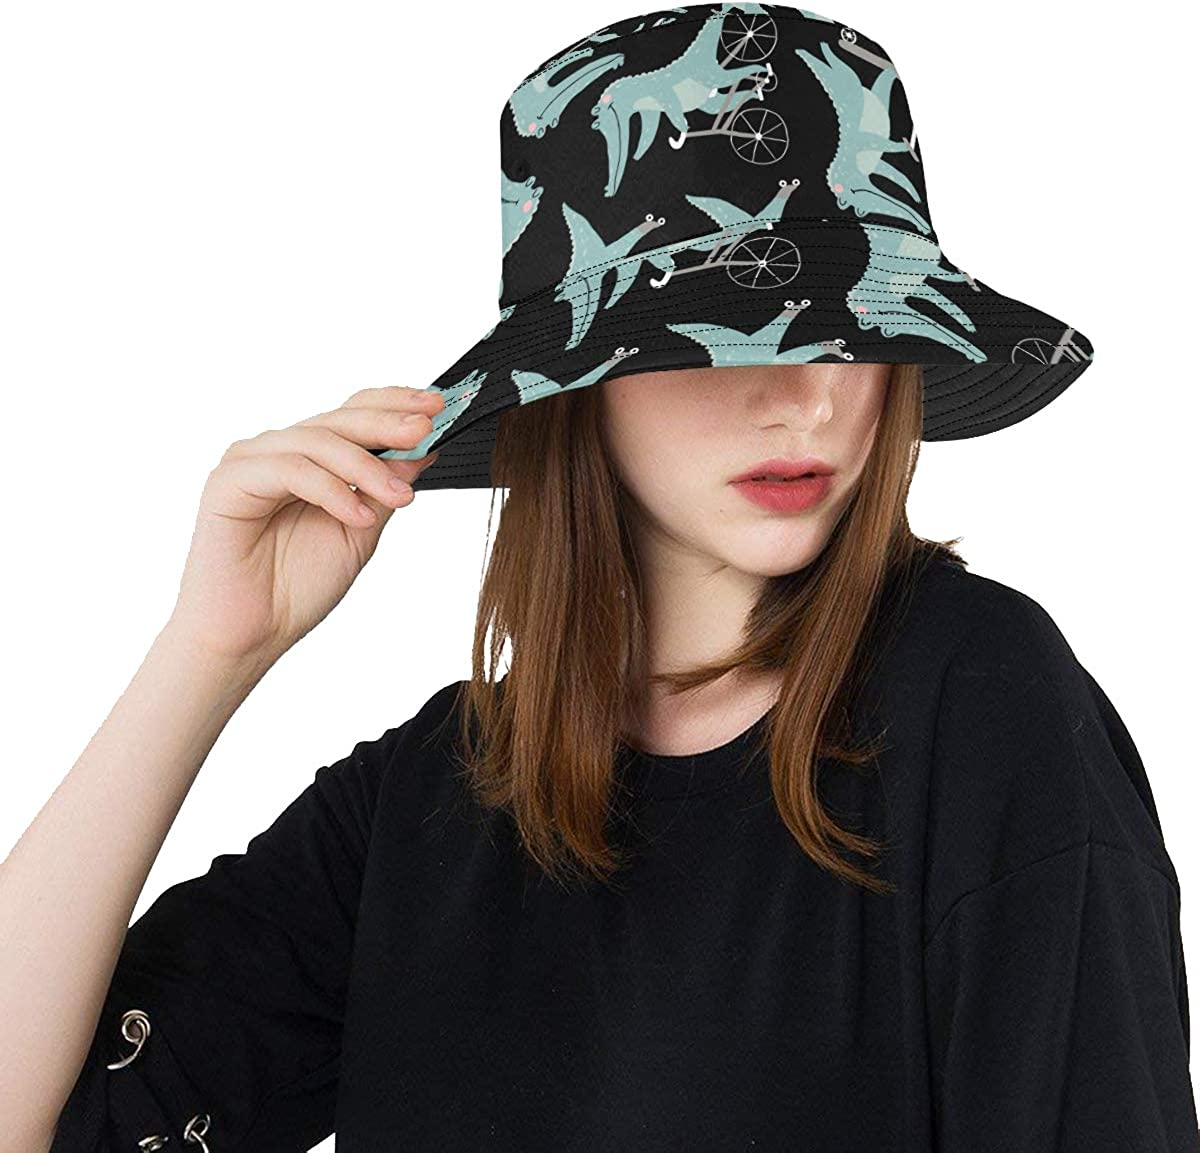 Crocodile Fiercely Funny Crawl Summer Unisex Fishing Sun Top Bucket Hats for Kid Teens Women and Men with Packable Fisherman Cap for Outdoor Baseball Sport Picnic